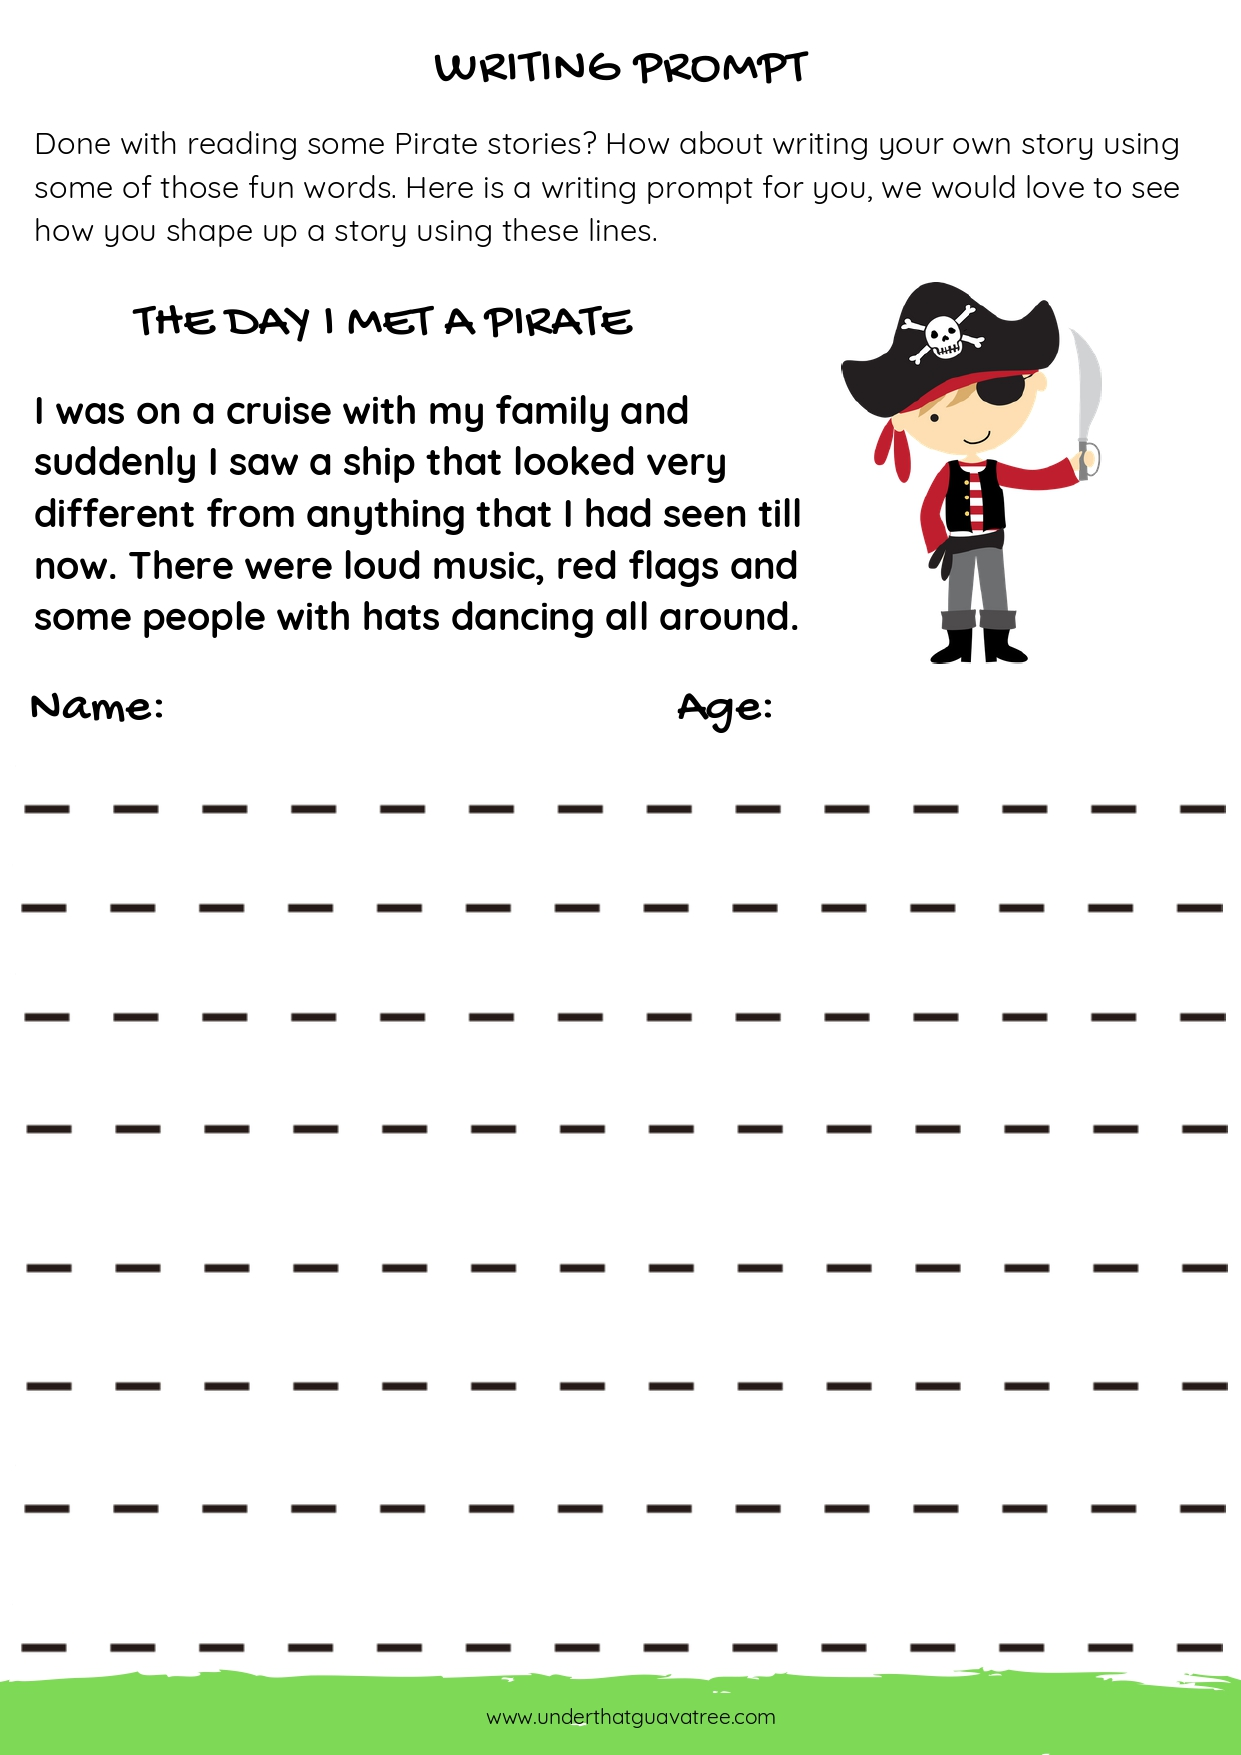 Fun With Pirates - Kiddingly Magazine - Pirates By Kiddingly page 0013